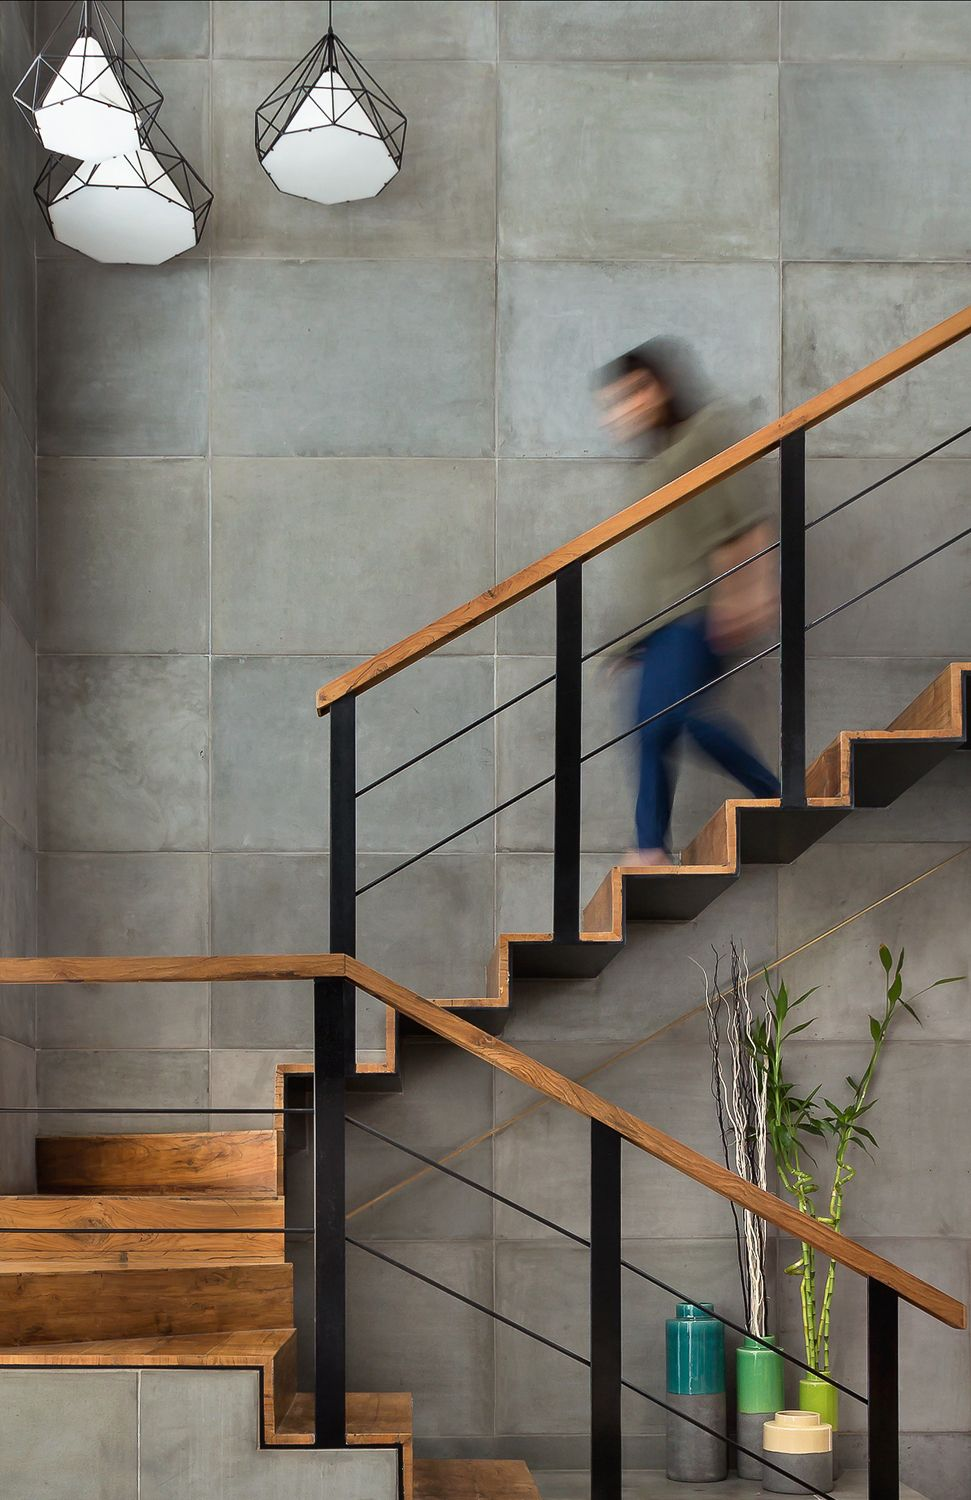 Best Images Modern Staircase Ideas On Staircase Ideas: Gallery Of The Open House / STUDIO Nishita Kamdar